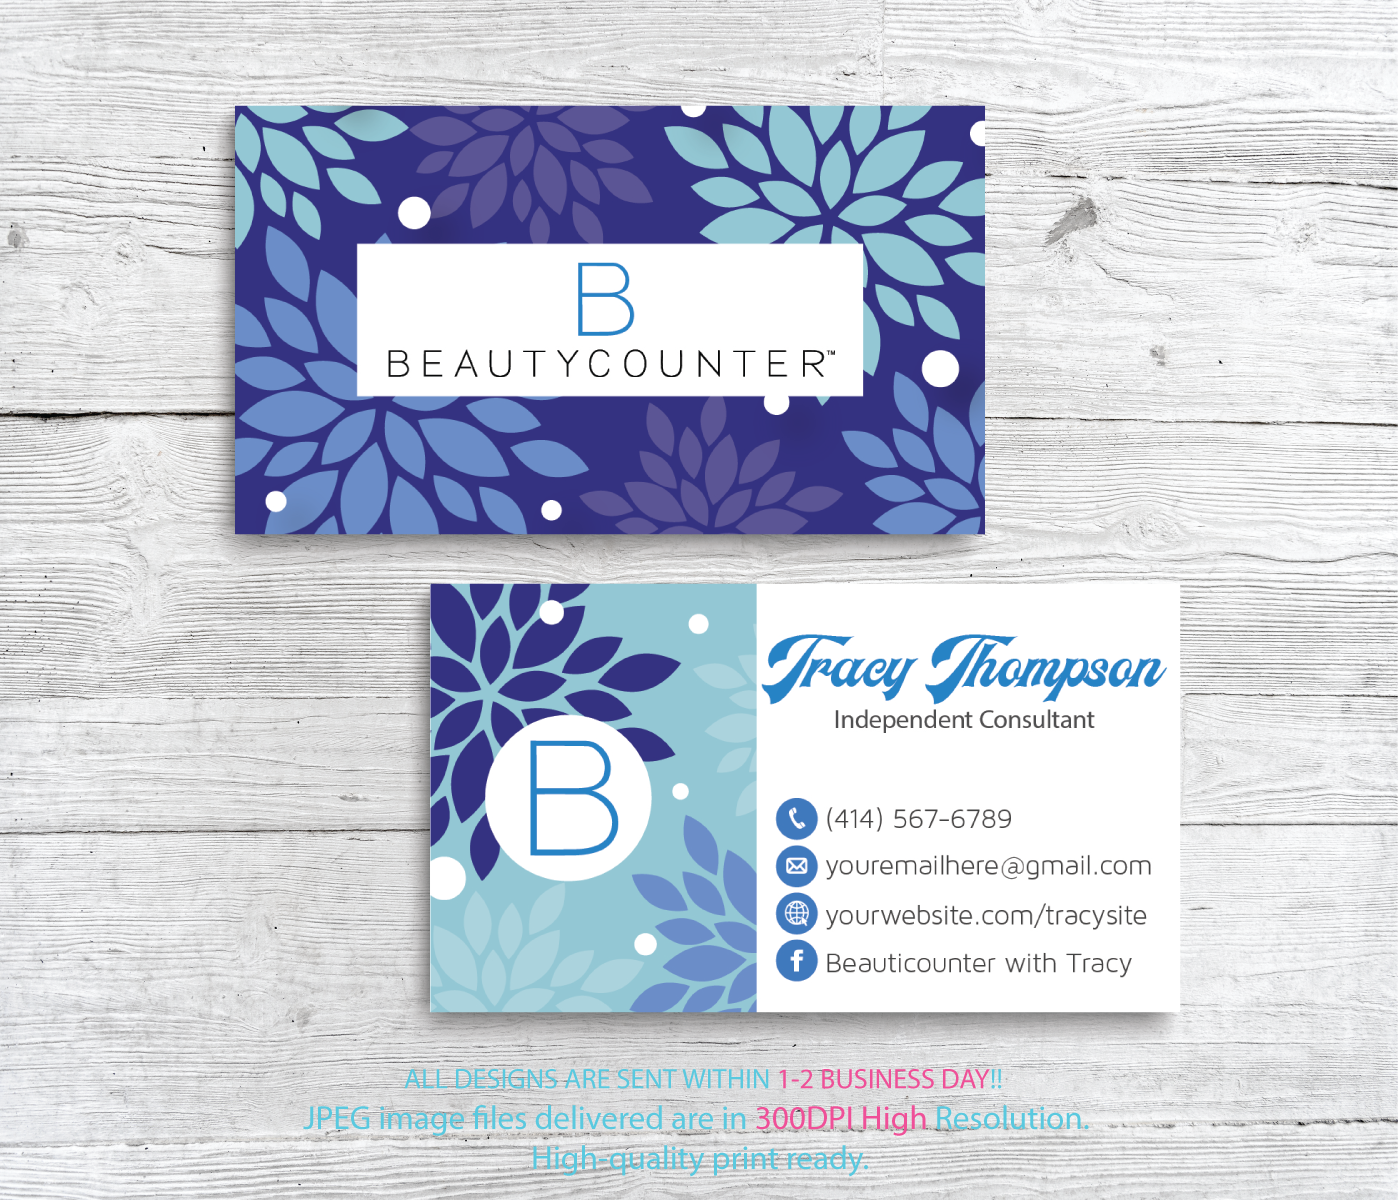 Beautycounter Business Cards Personalized Beautycounter Business Cards Bc18 Floral Business Cards Printable Cards Printable Business Cards